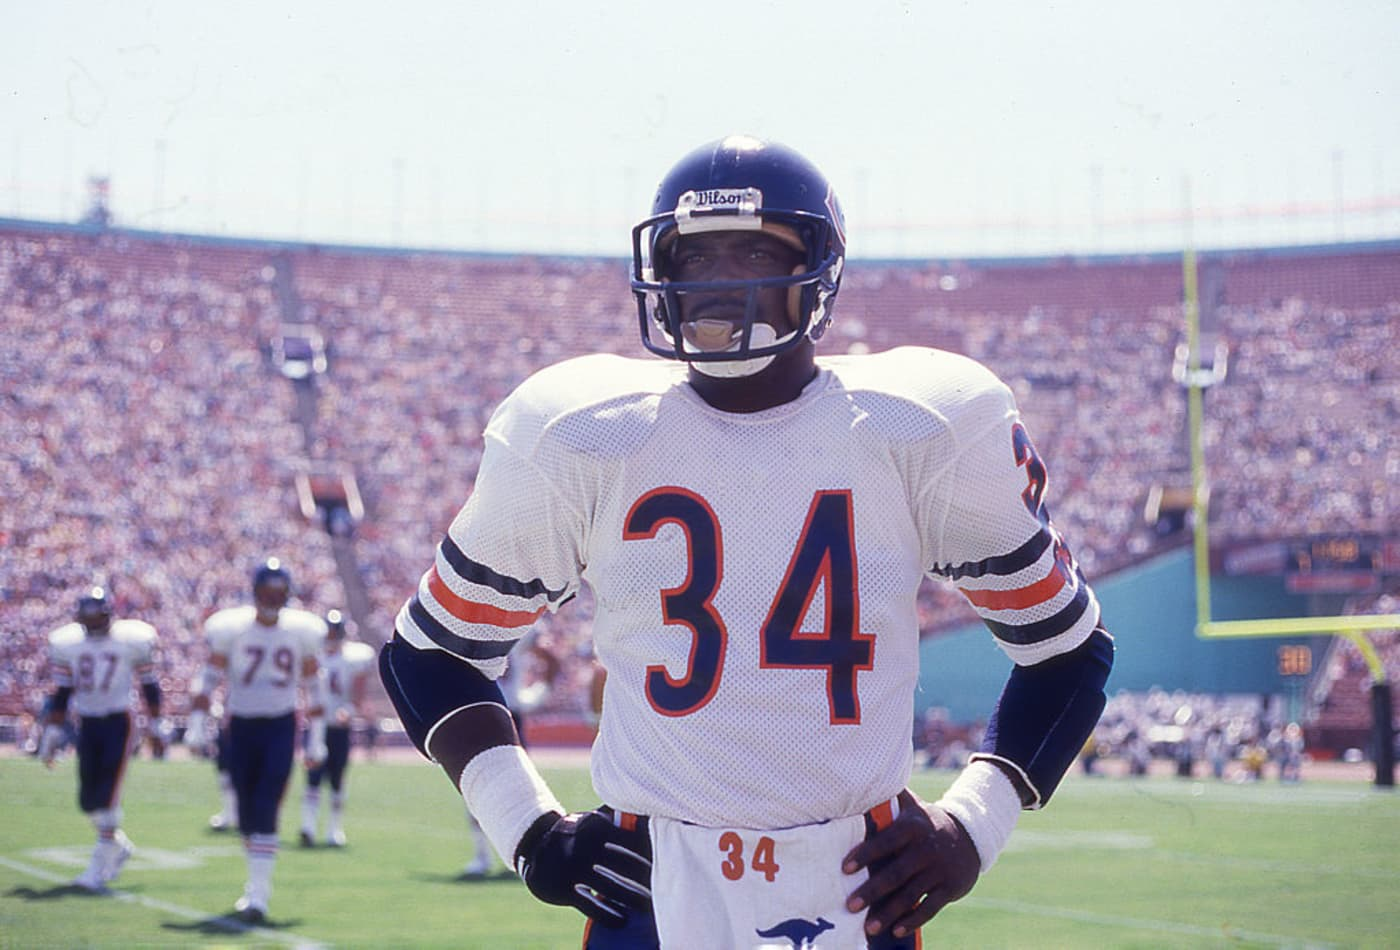 38be7bcedb7 Walter Payton of the Chicago Bears circa 1987 prepares to play against the  Los Angeles Raiders at the Coliseum in Los Angeles, California